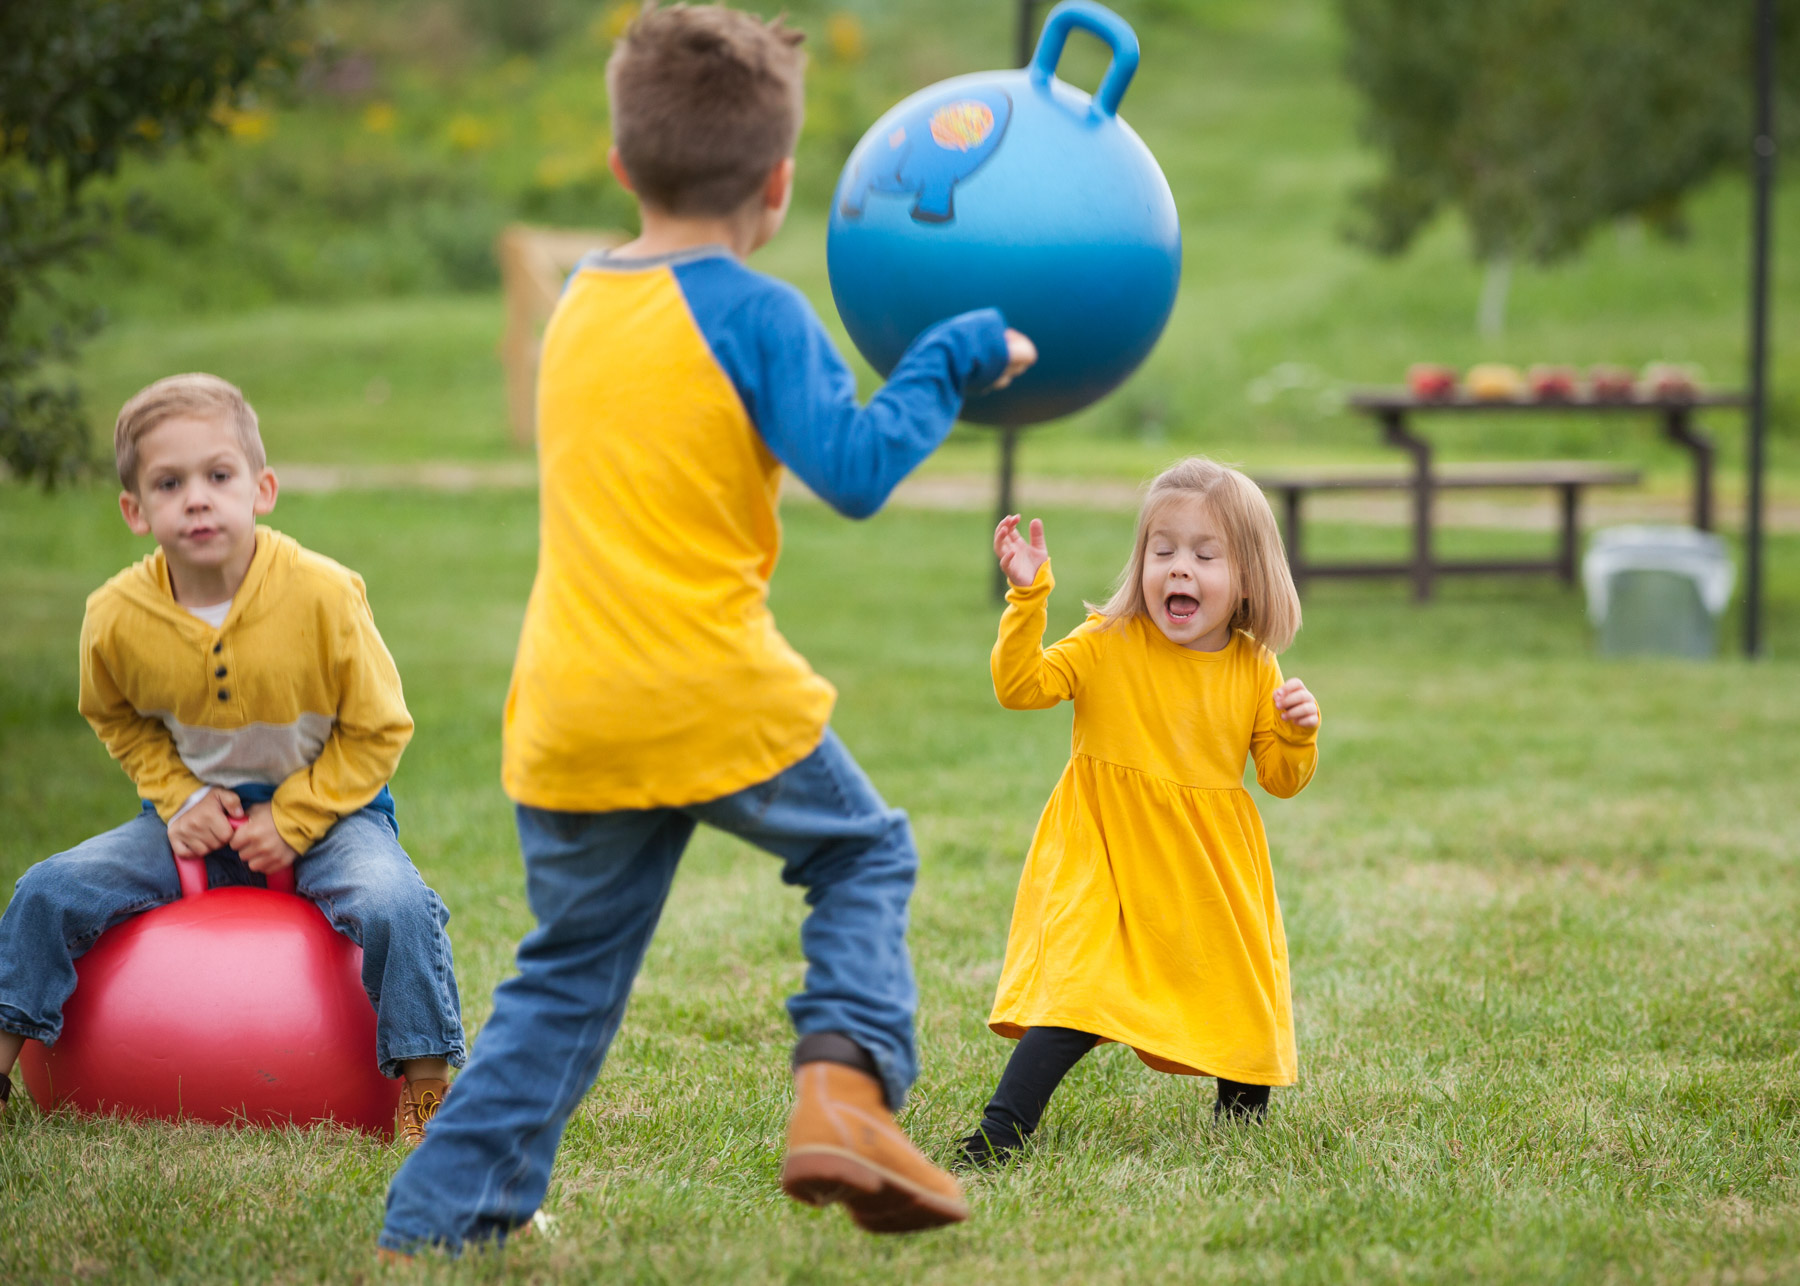 Toddler girl in yellow dress makes a shocked face as she dodges the ball her is throwing at her.